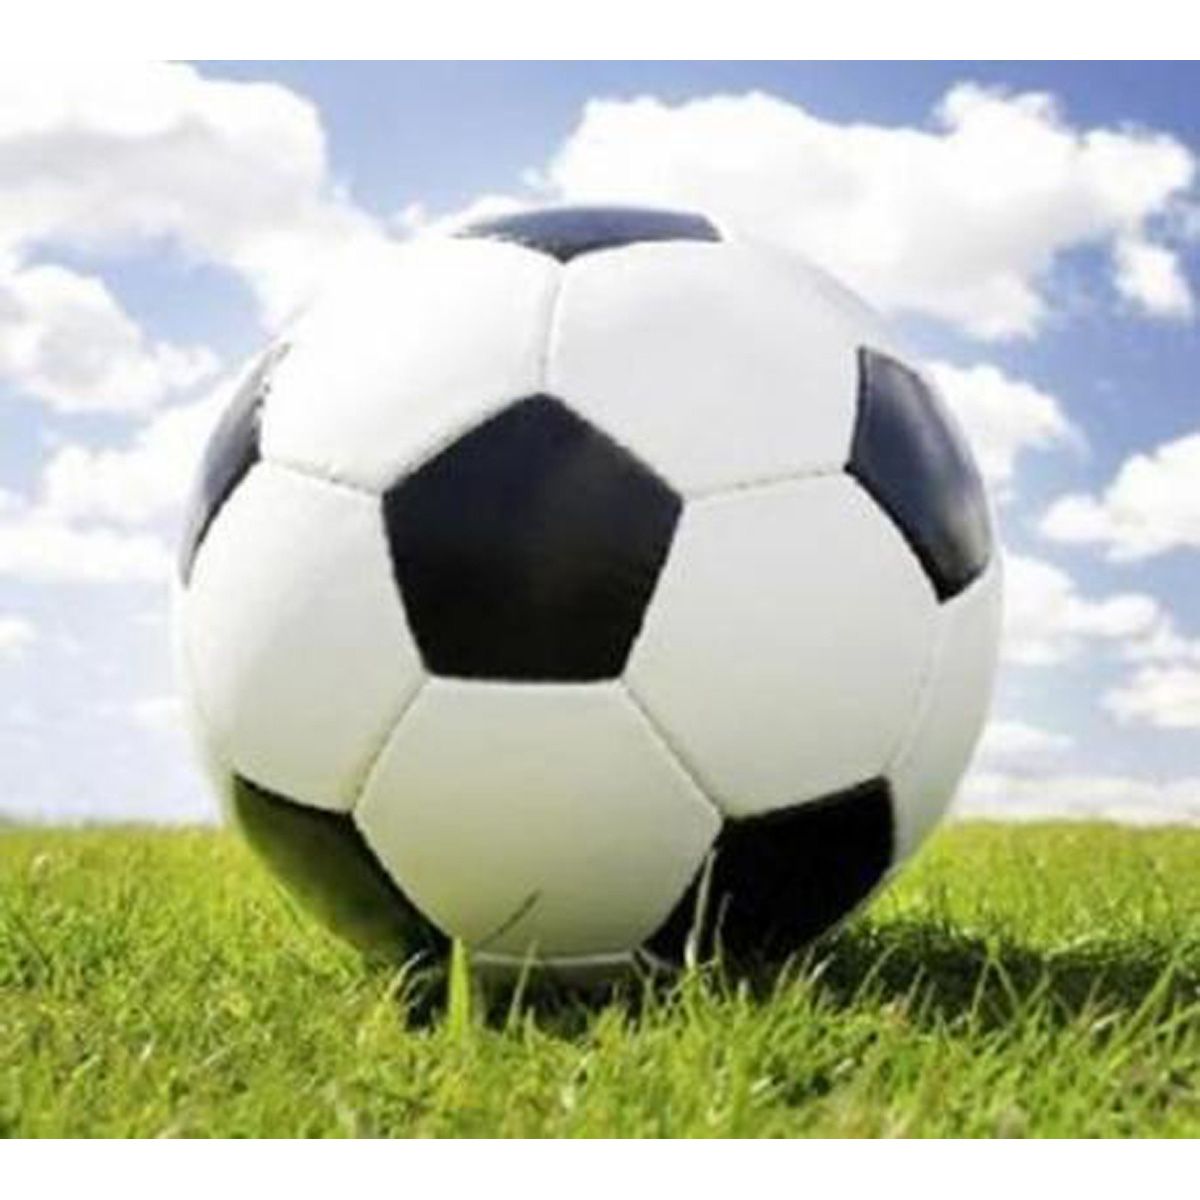 FOOTBALL: Headington edge past Summertown Flares in 21-goal cracker